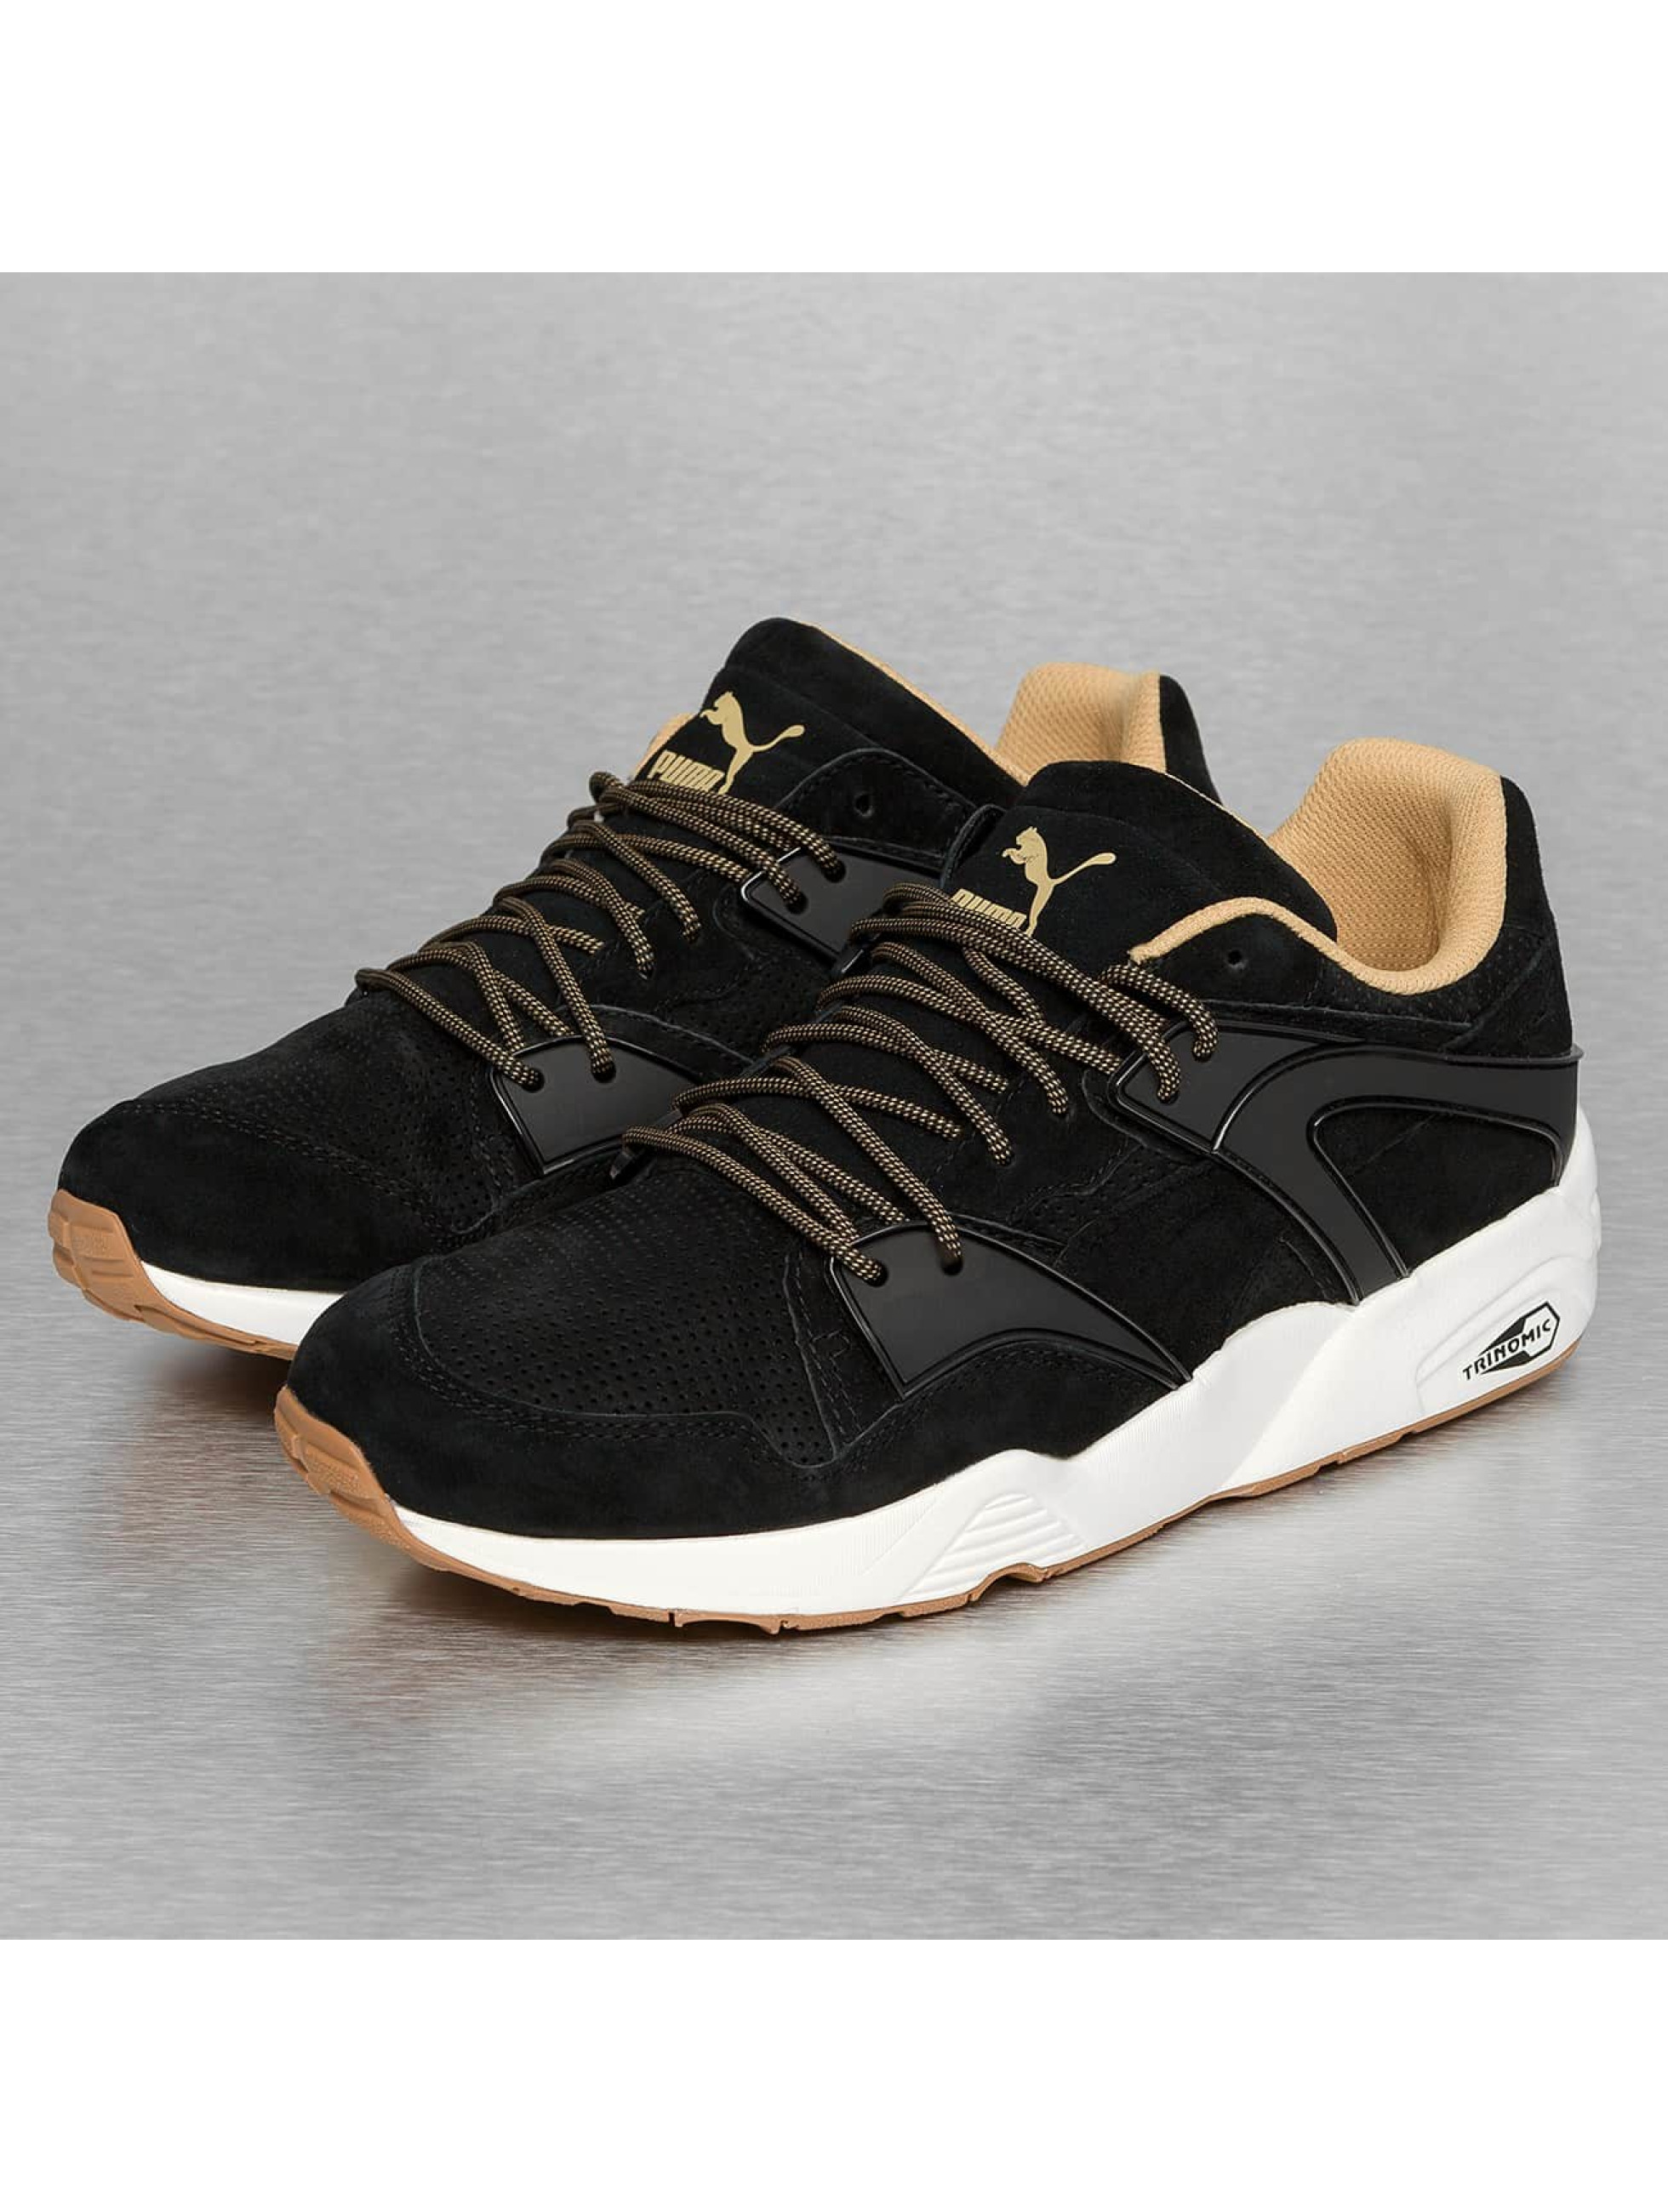 Puma Basket Trinomic Blaze Winterized